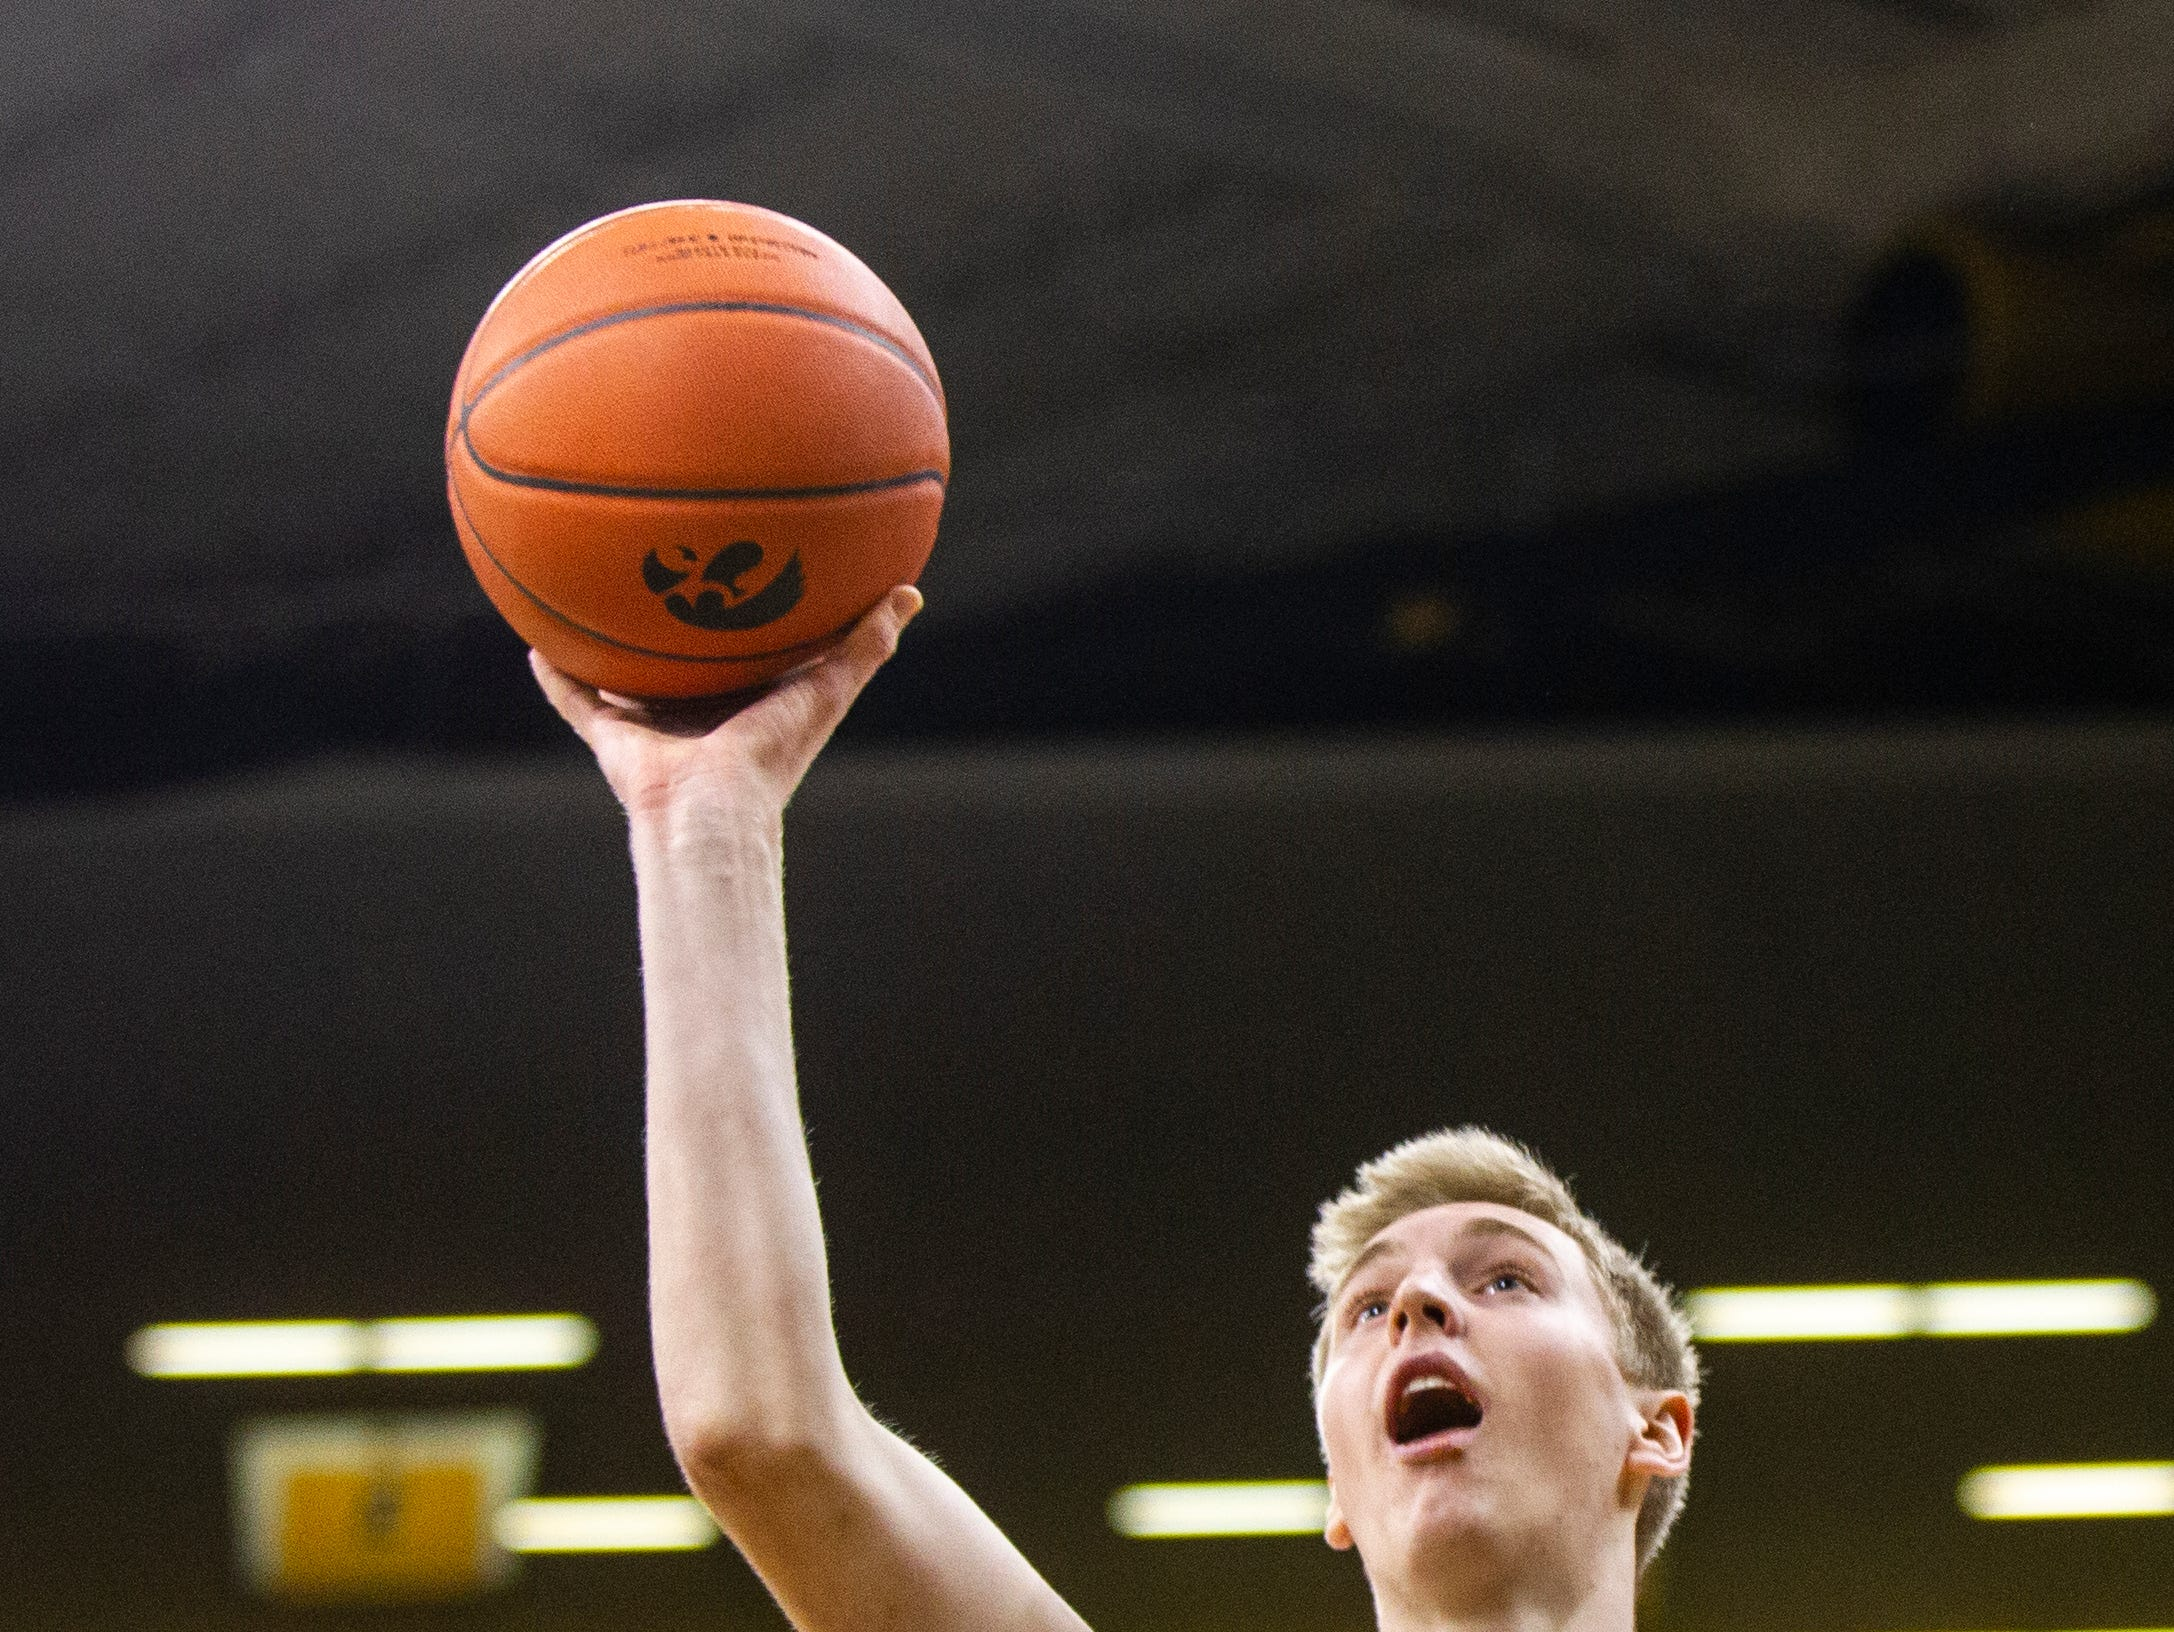 Iowa forward Michael Baer (0) attempts a shot during an NCAA men's basketball game on Wednesday, Nov. 21, 2018, at Carver-Hawkeye Arena in Iowa City.